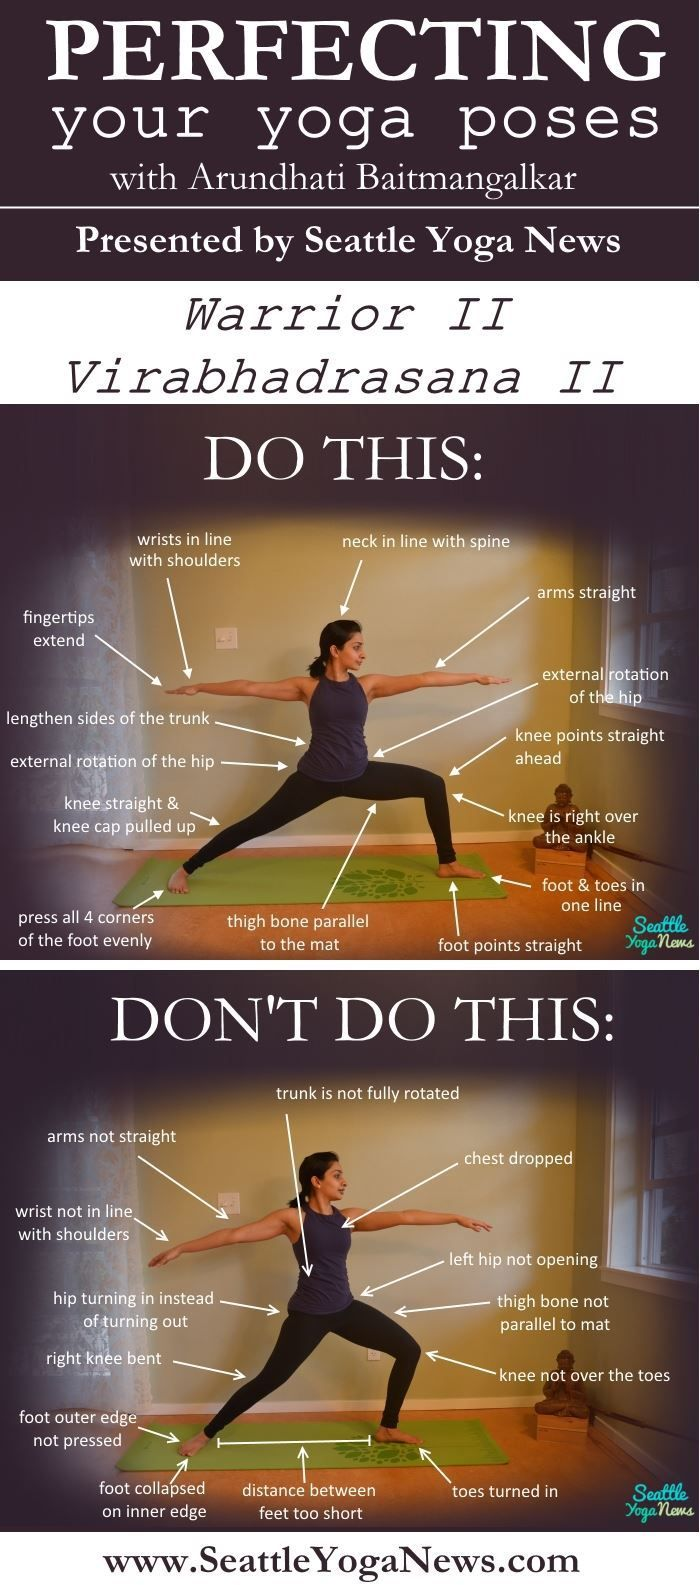 Looking to perfect your Warrior II yoga pose? Take a look at this Warrior II guide that visually explains what to do and what not to do in this yoga pose. What do you think?